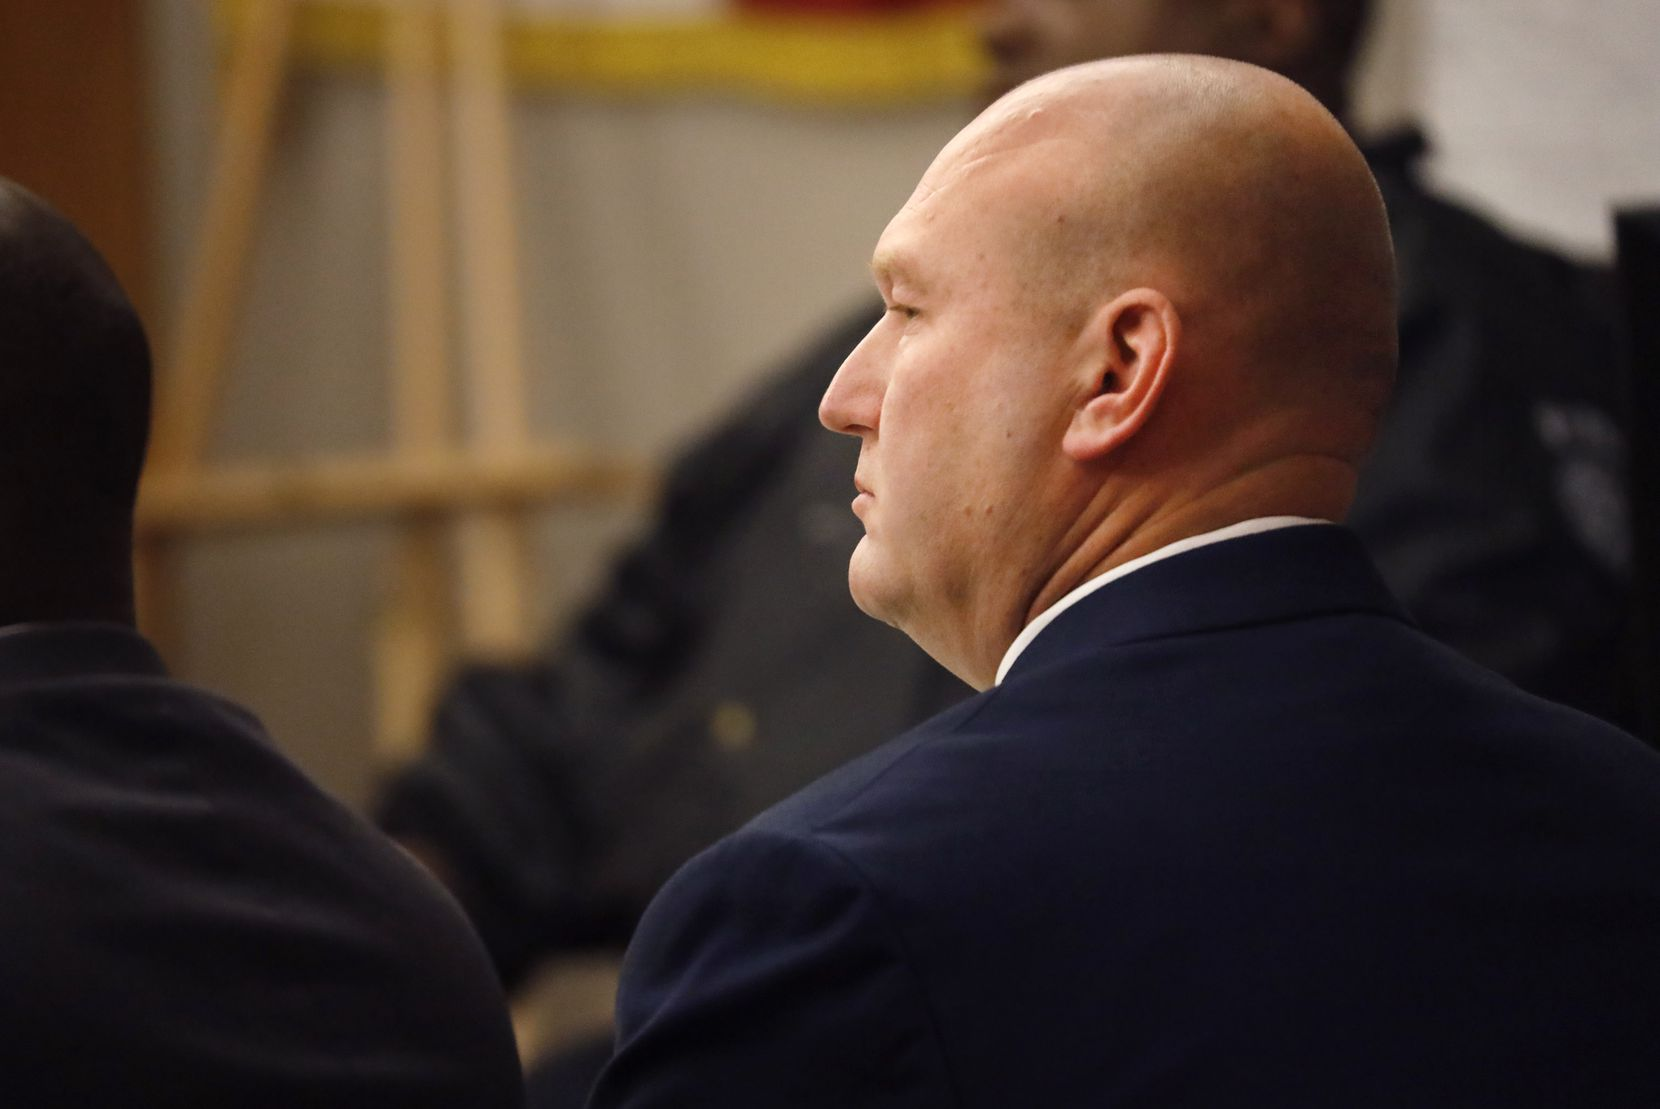 Former Dallas police officer Christopher Hess listens to testimony in his aggravated assault trial in the 292nd District Court at the Frank Crowley Courts Building in Dallas. The defense rested Tuesday, February 11, 2020. He's accused of the 2017 fatal shooting of 21-year-old Genevive Dawes. (Tom Fox/The Dallas Morning News)